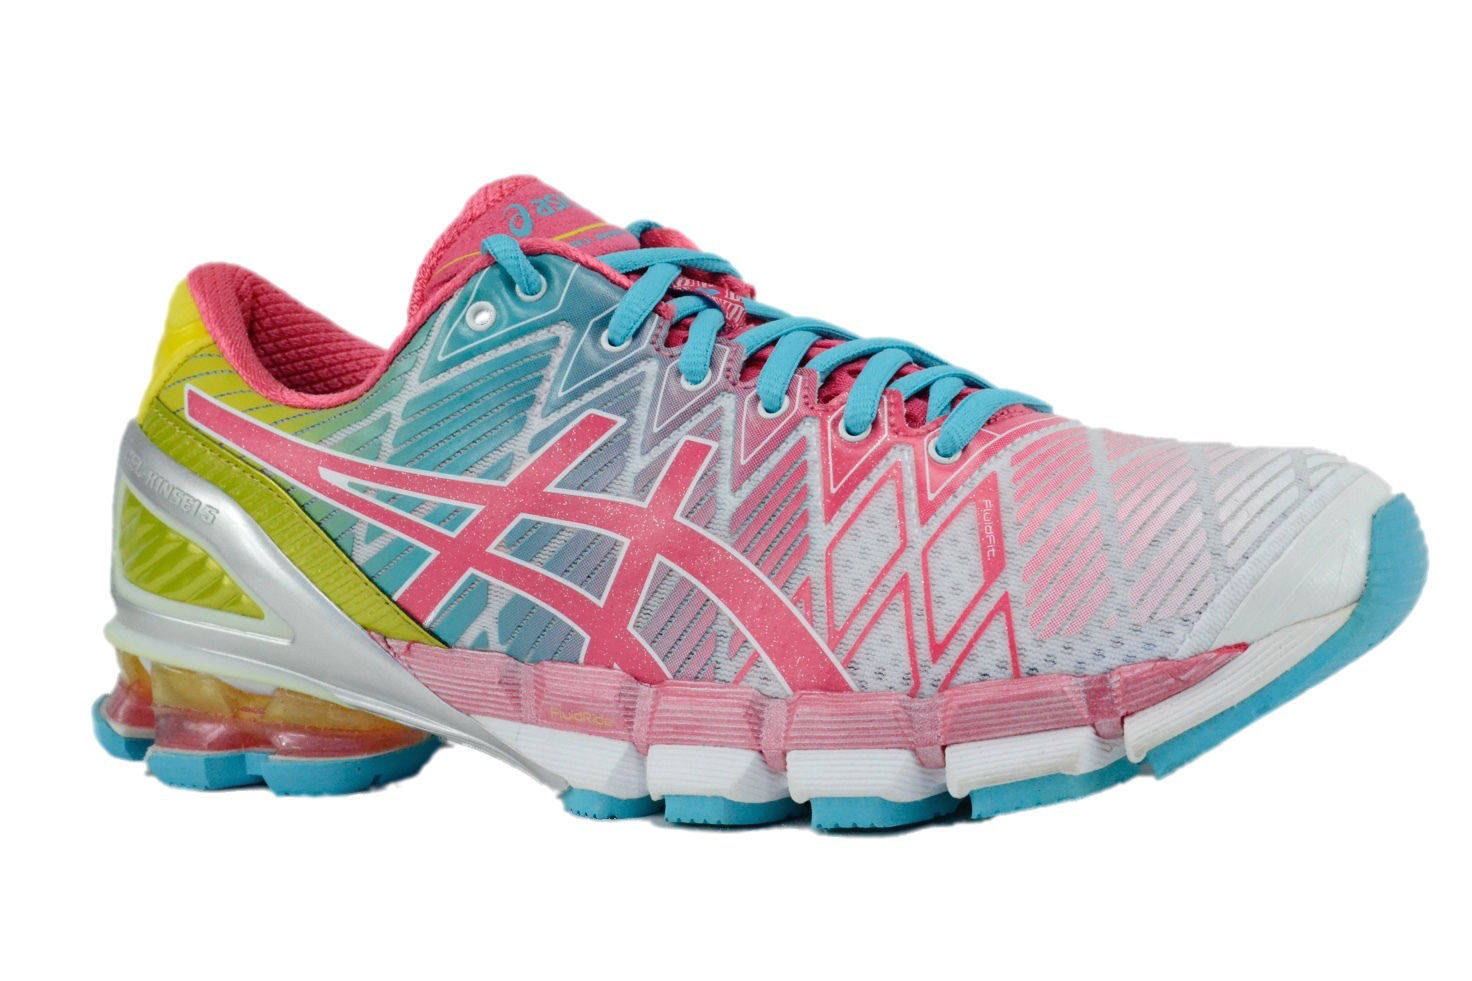 Primary image for Asics Gel Kinsei 5 White Teaberry Yellow T3E9Y 0122 Womens Running Shoes